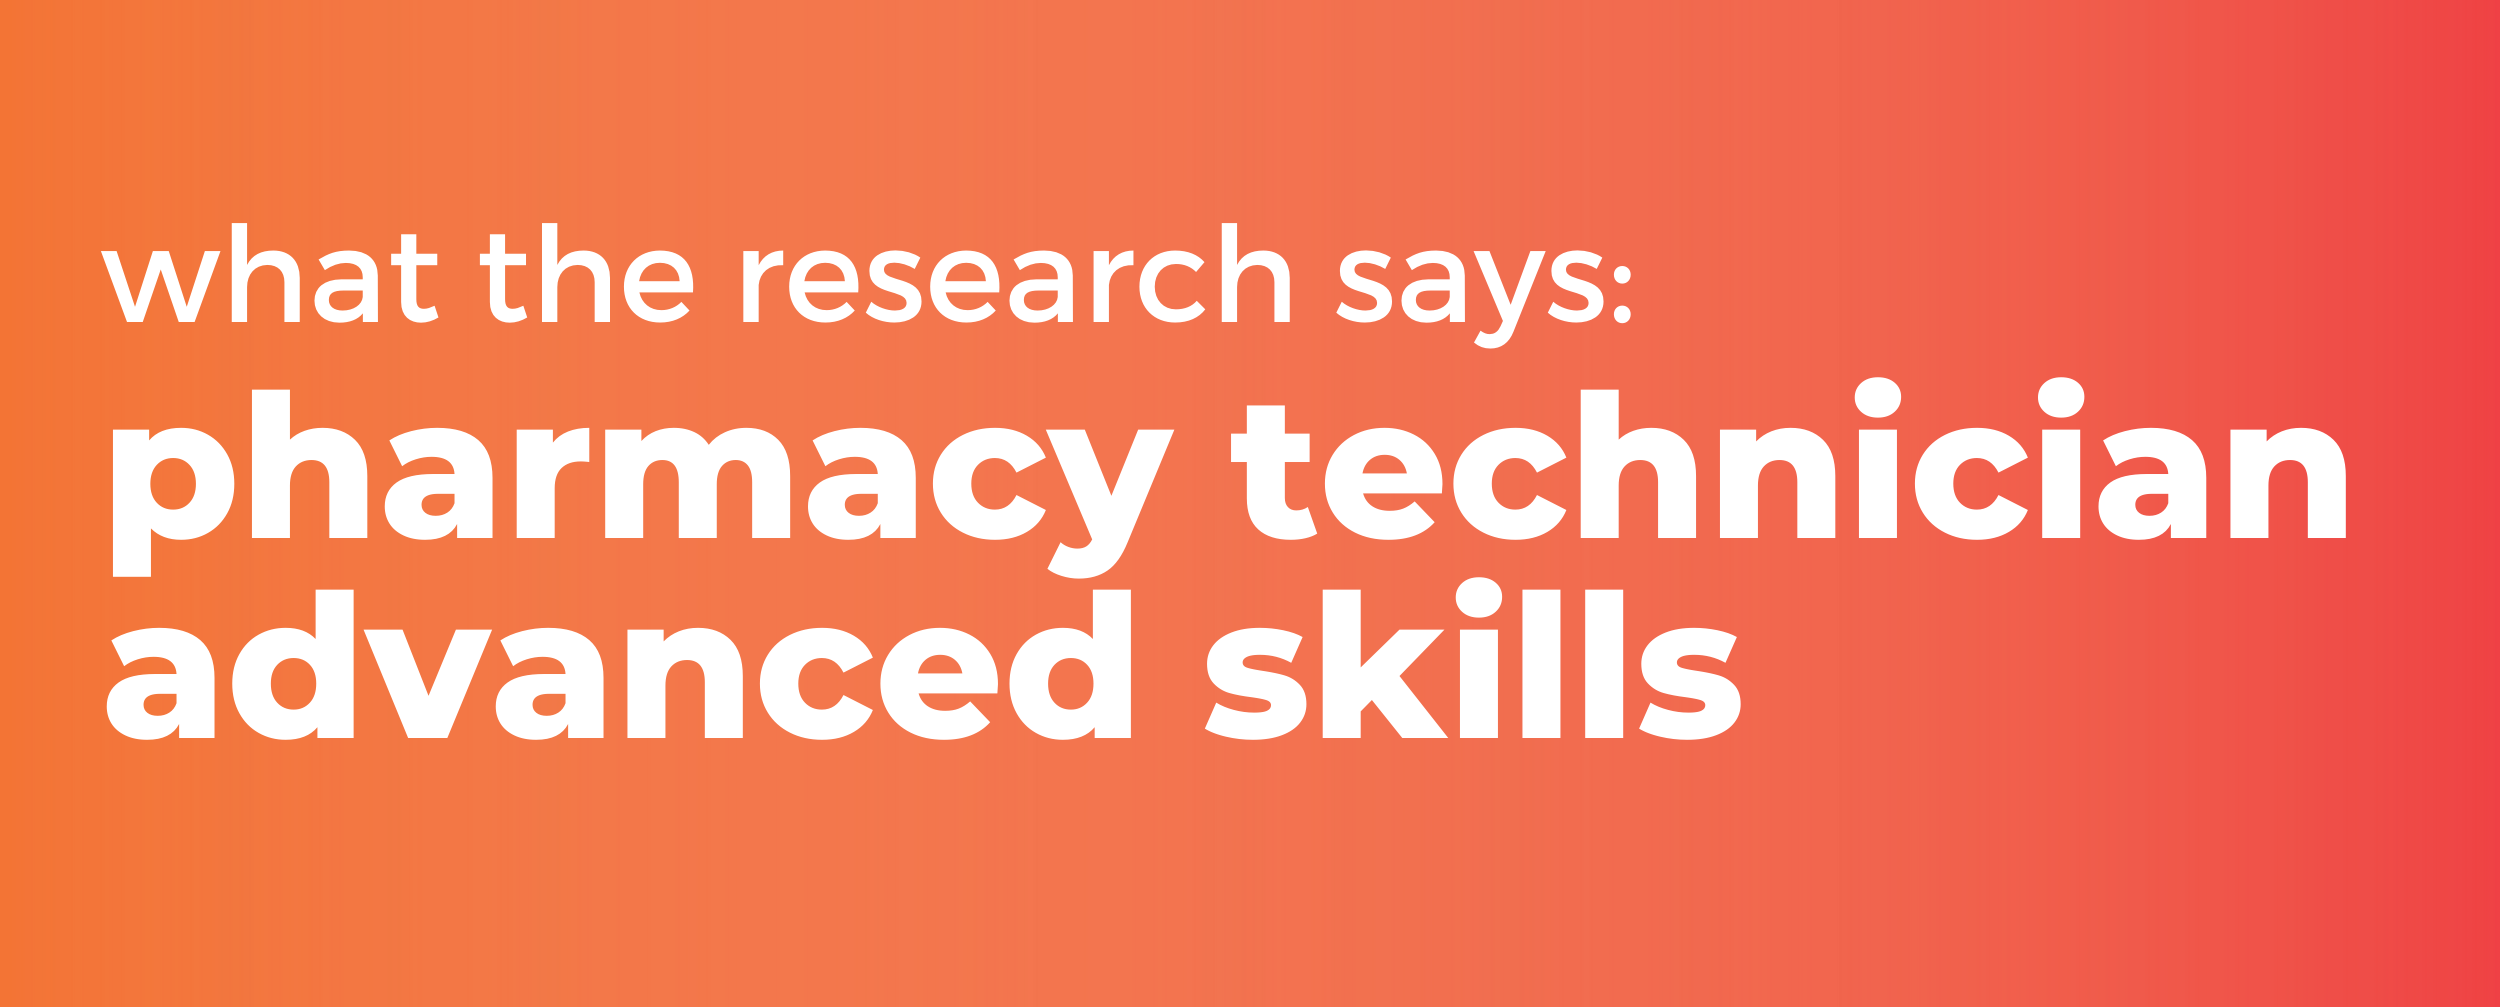 What the Research Says about Advanced Skills Performed by Pharmacy Technicians